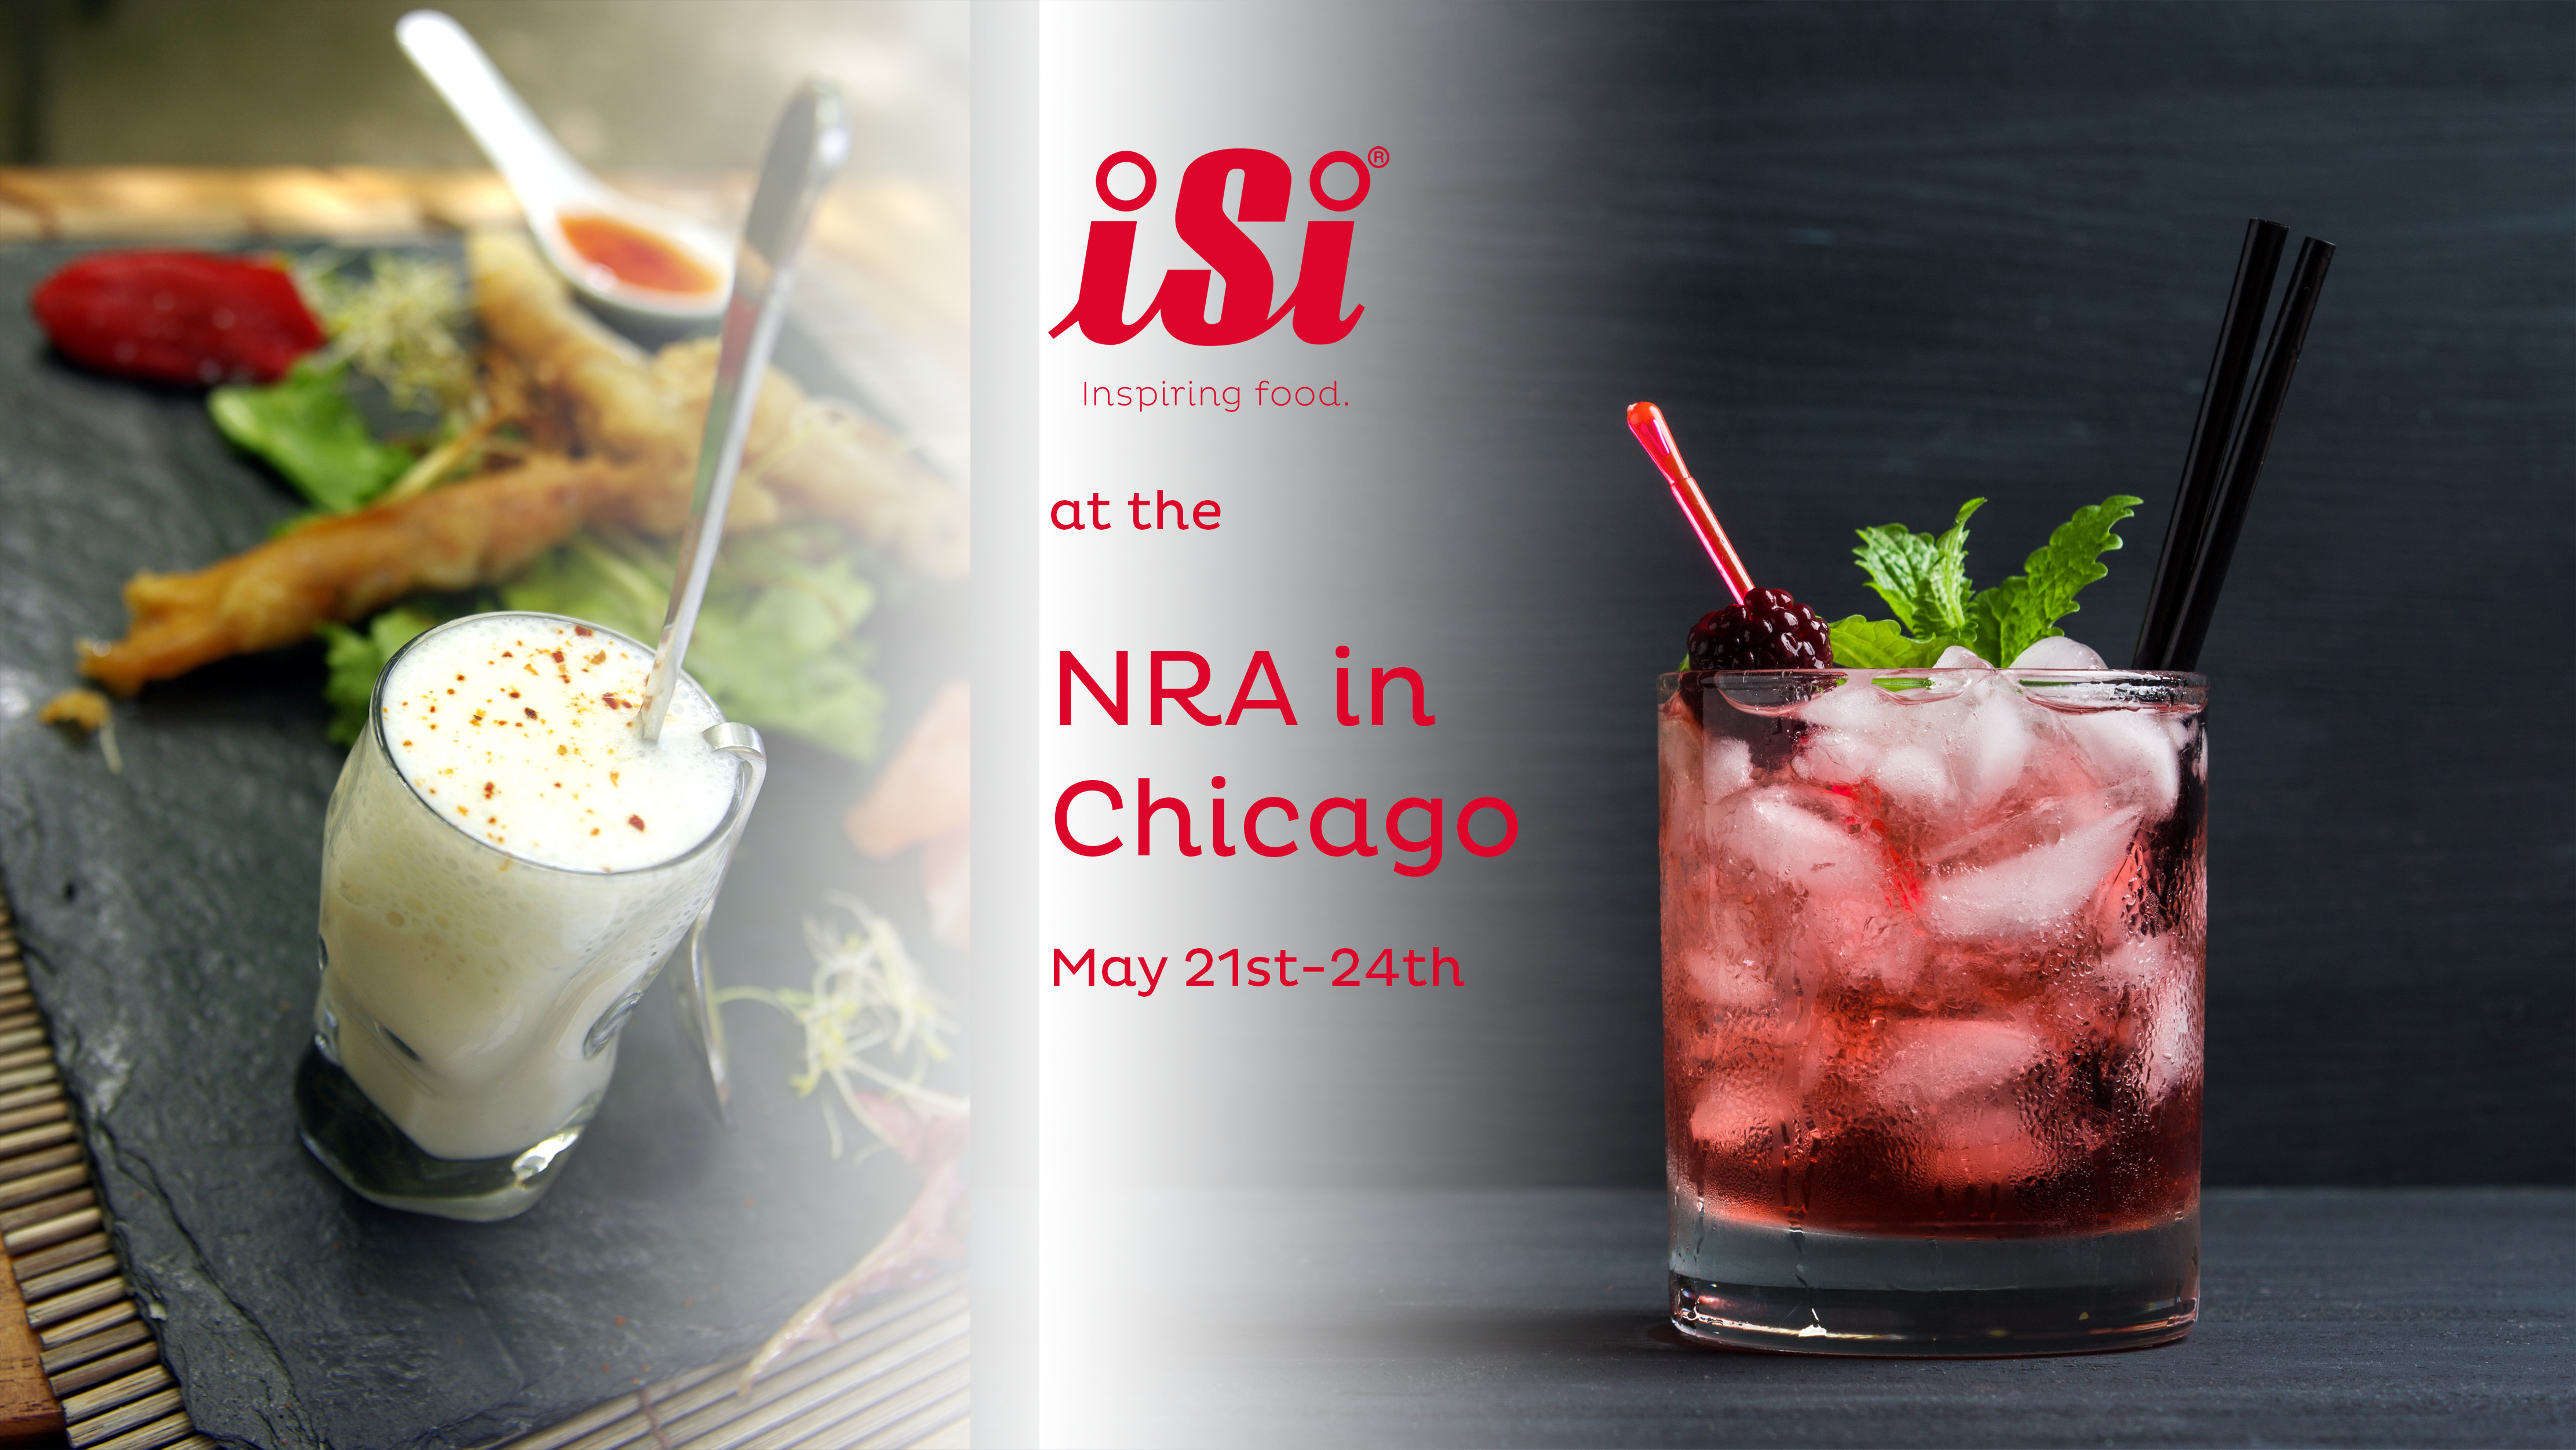 Experience Something NEW - iSi at the NRA Show